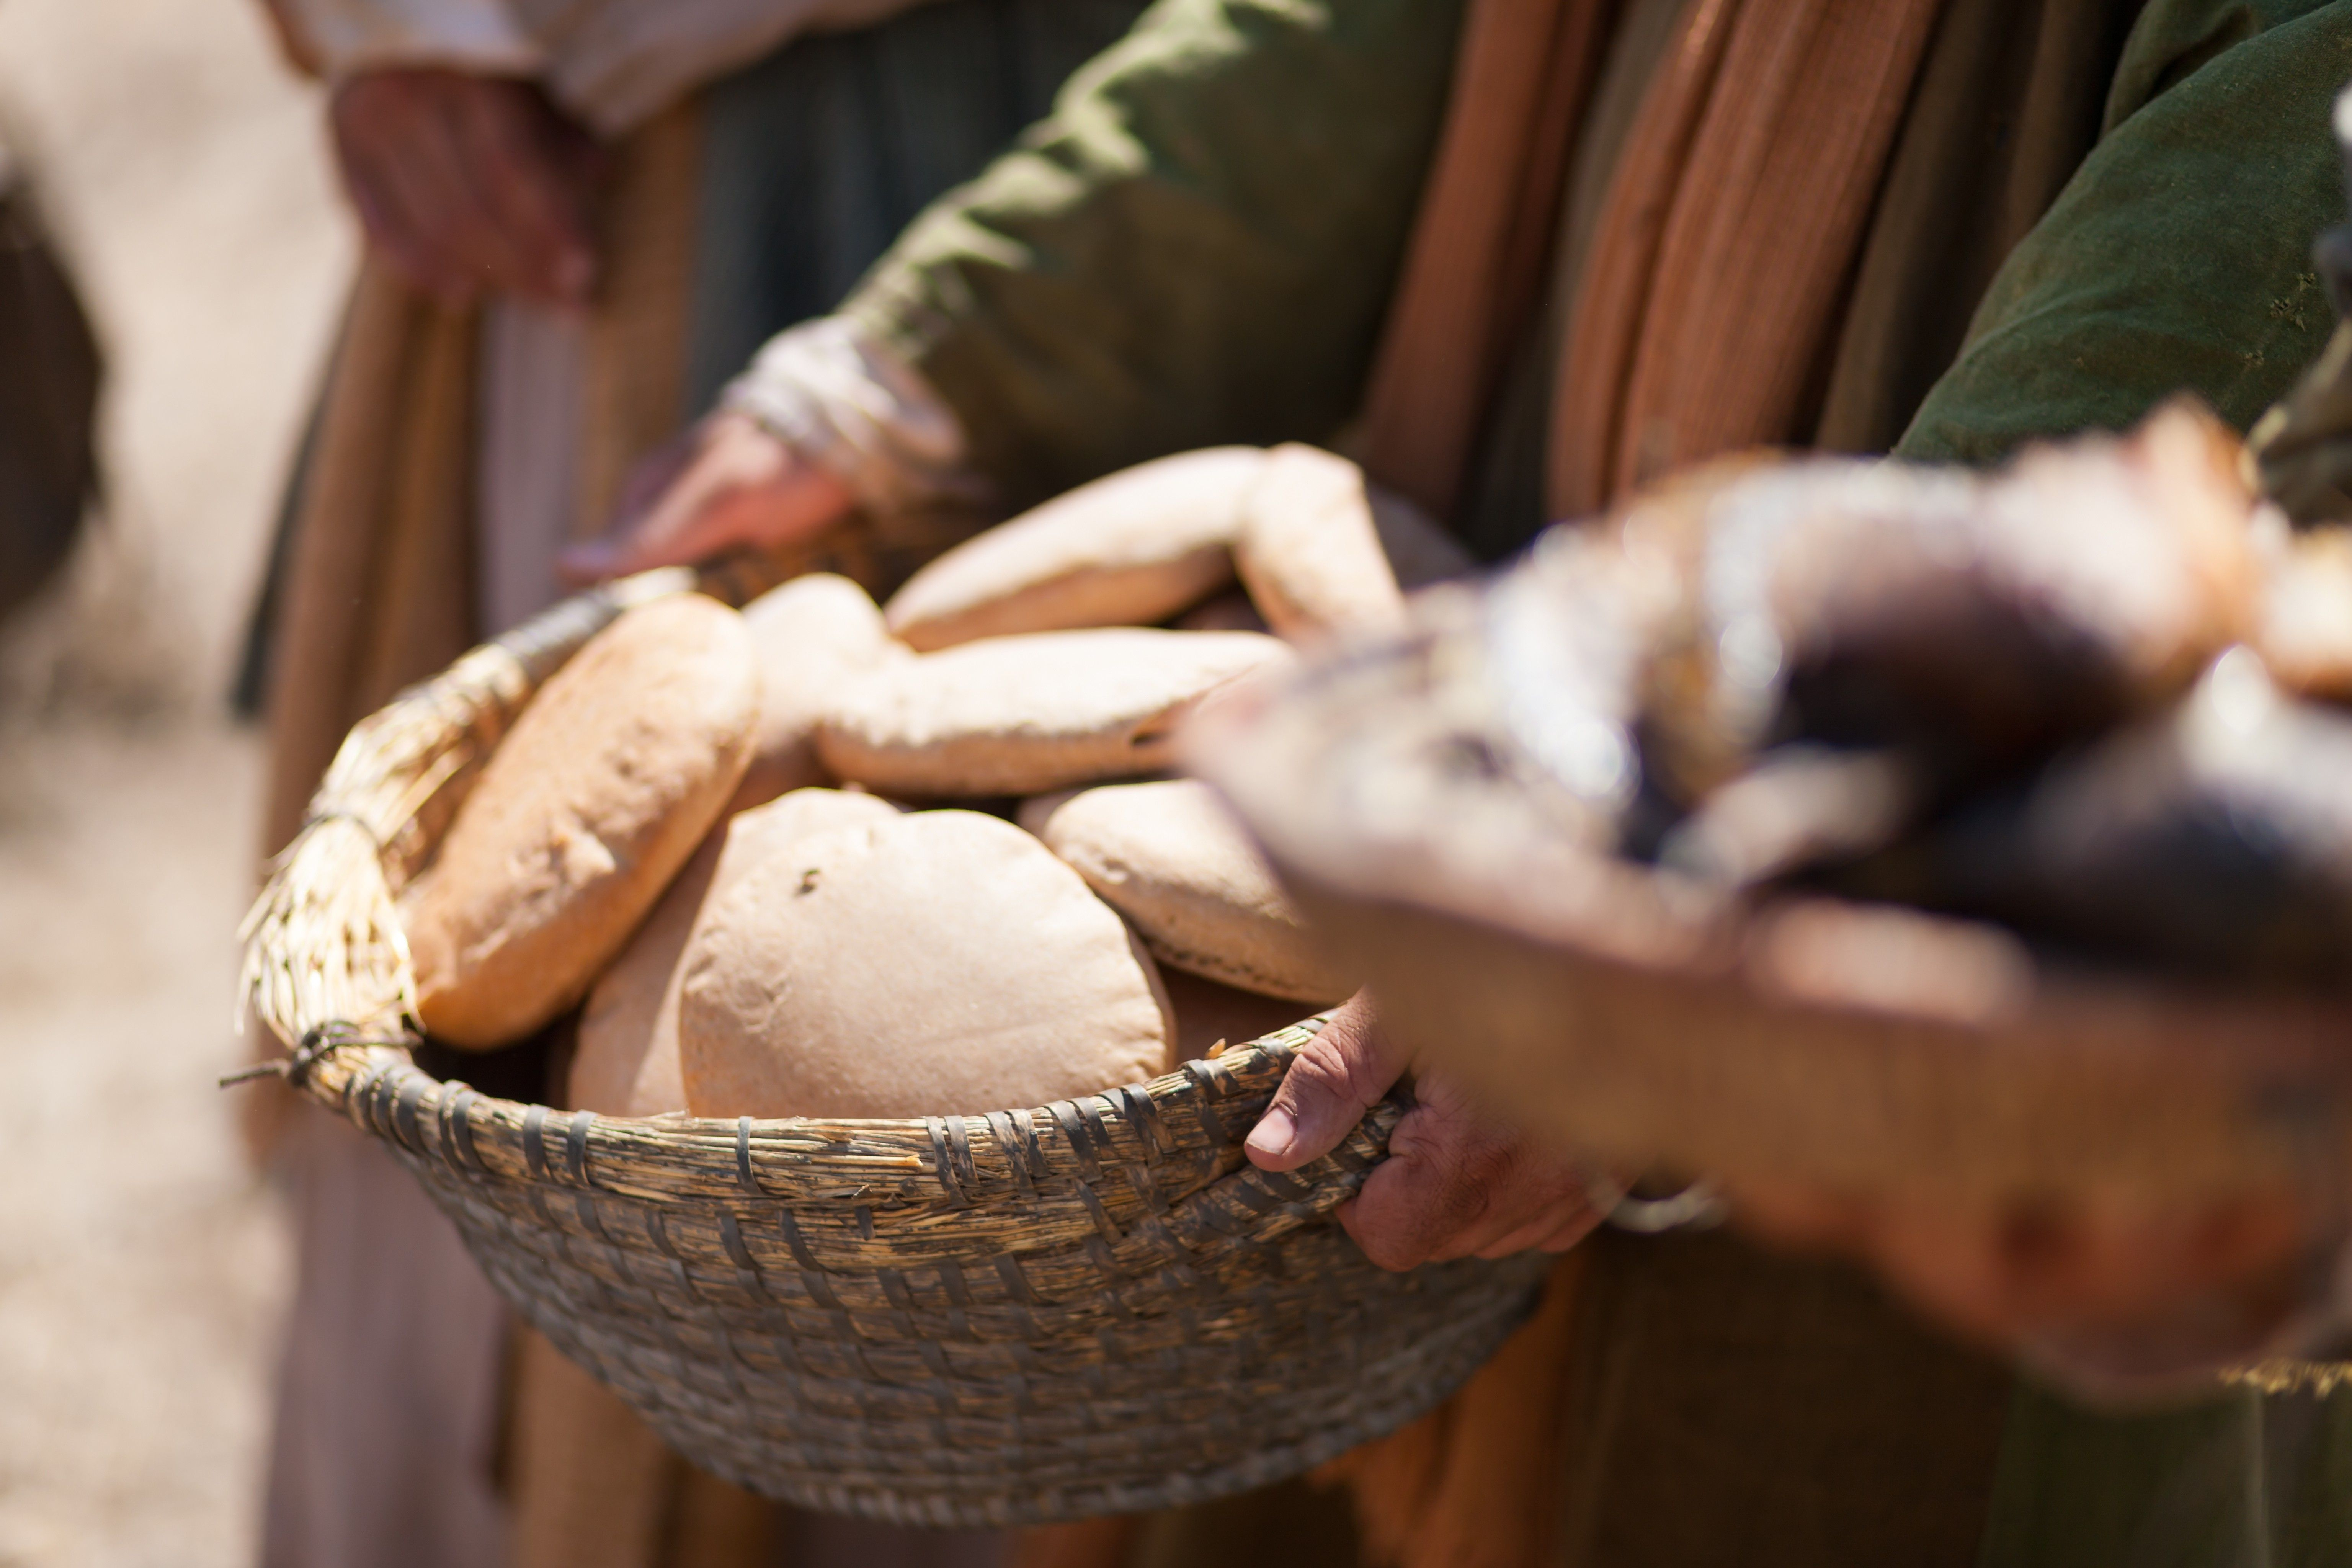 The loaves of bread used by Jesus Christ to feed 5,000 people.